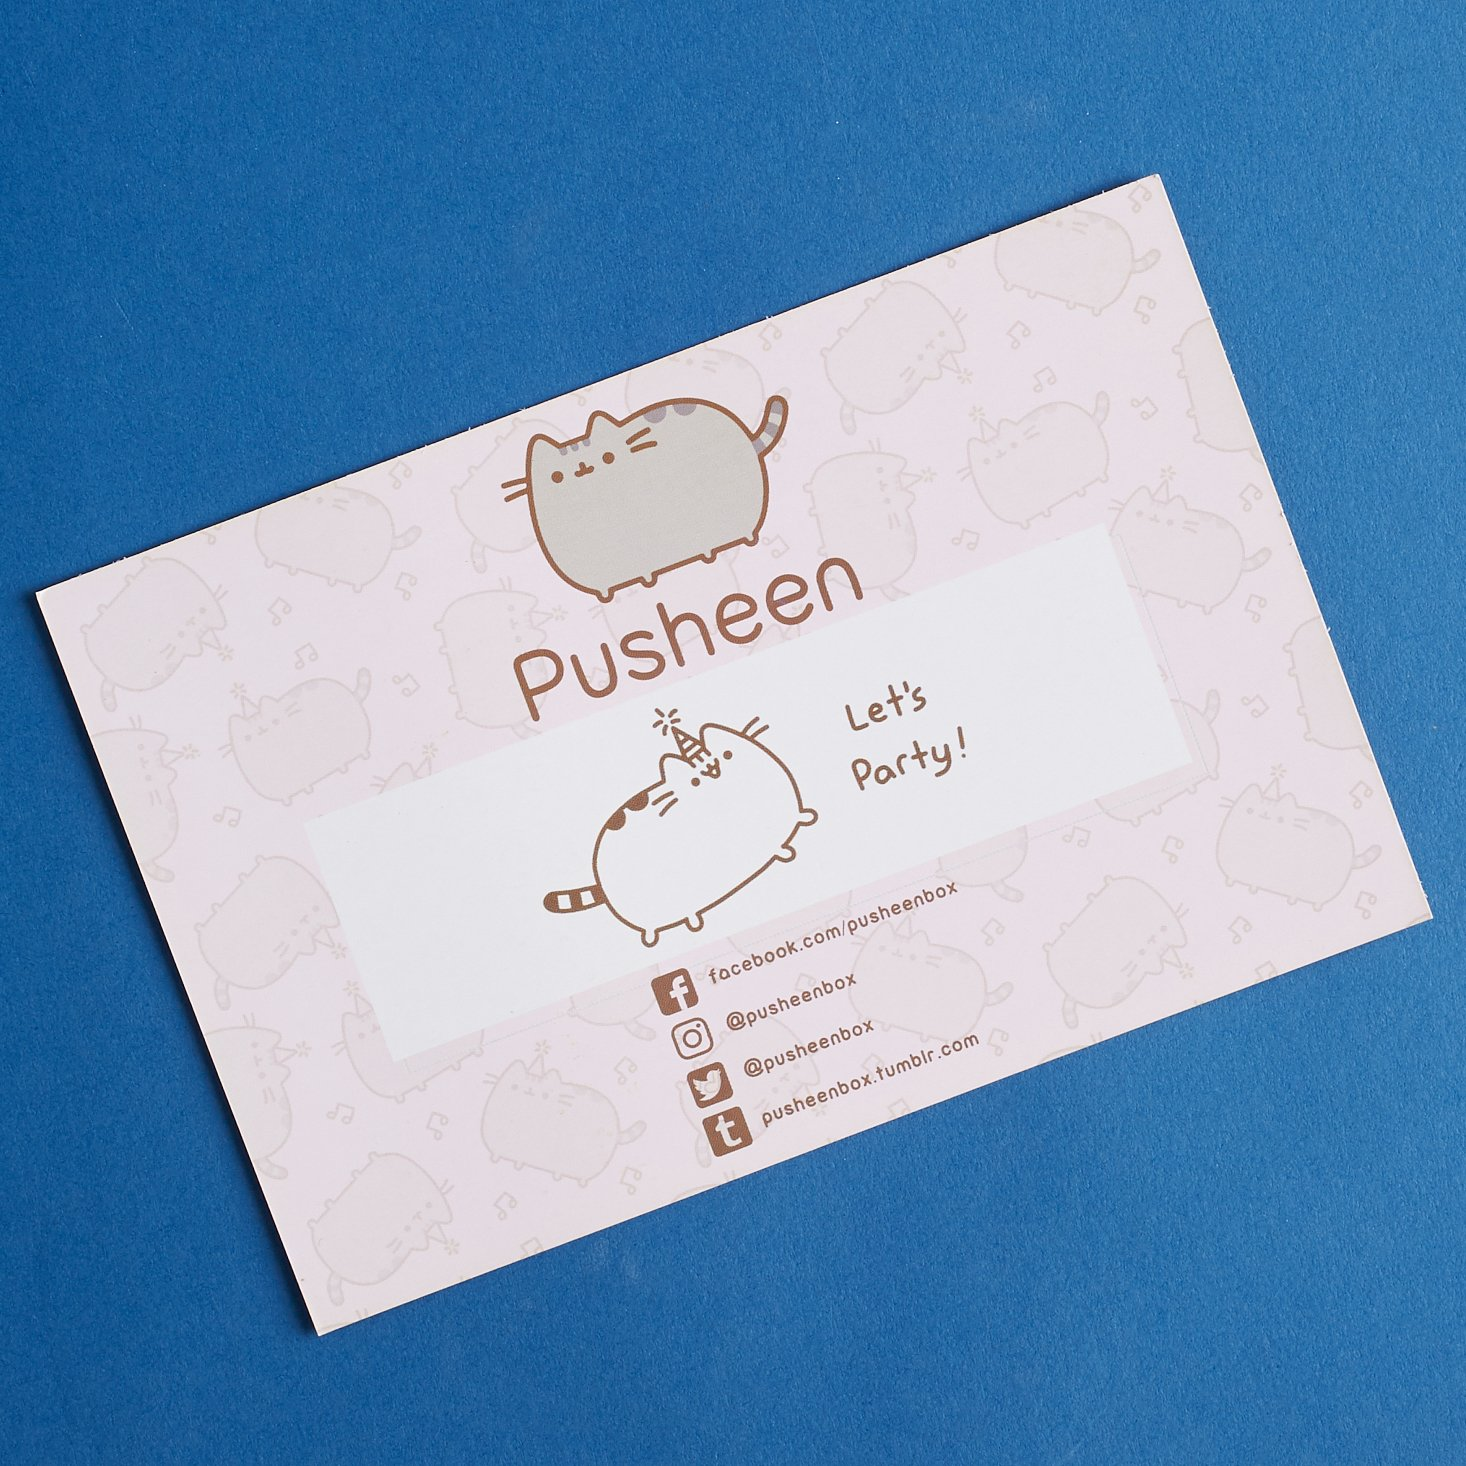 Pusheen-box-april-2017-0007